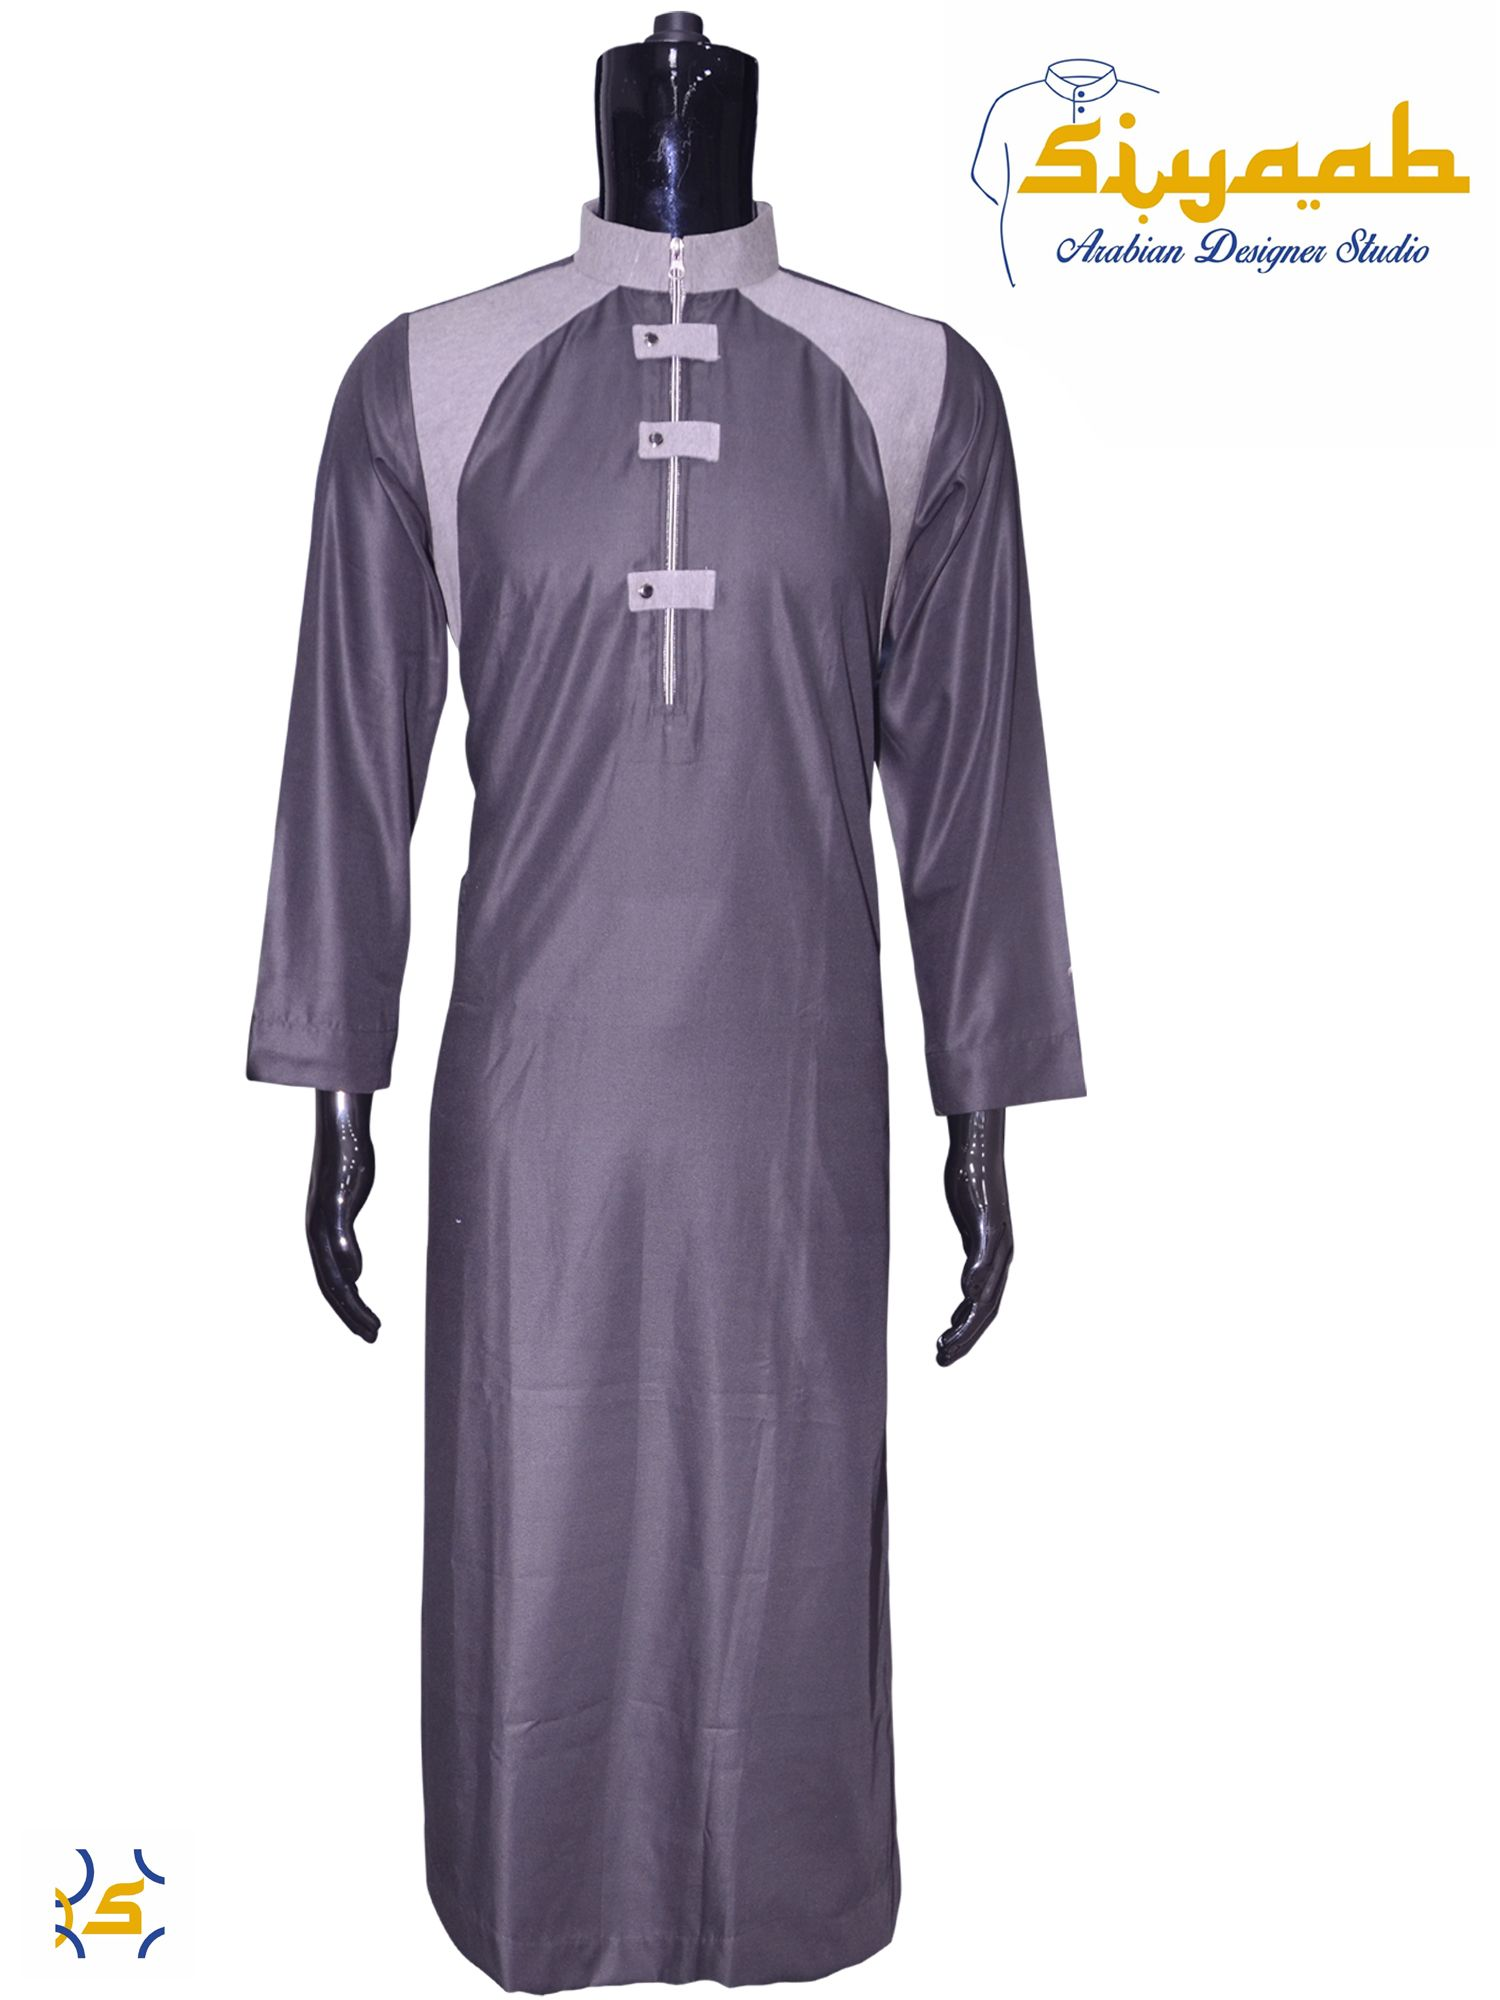 Online Clothes Designer | Siyaab Clothing Designer Jubba Thobes Online Arabic Dress Online